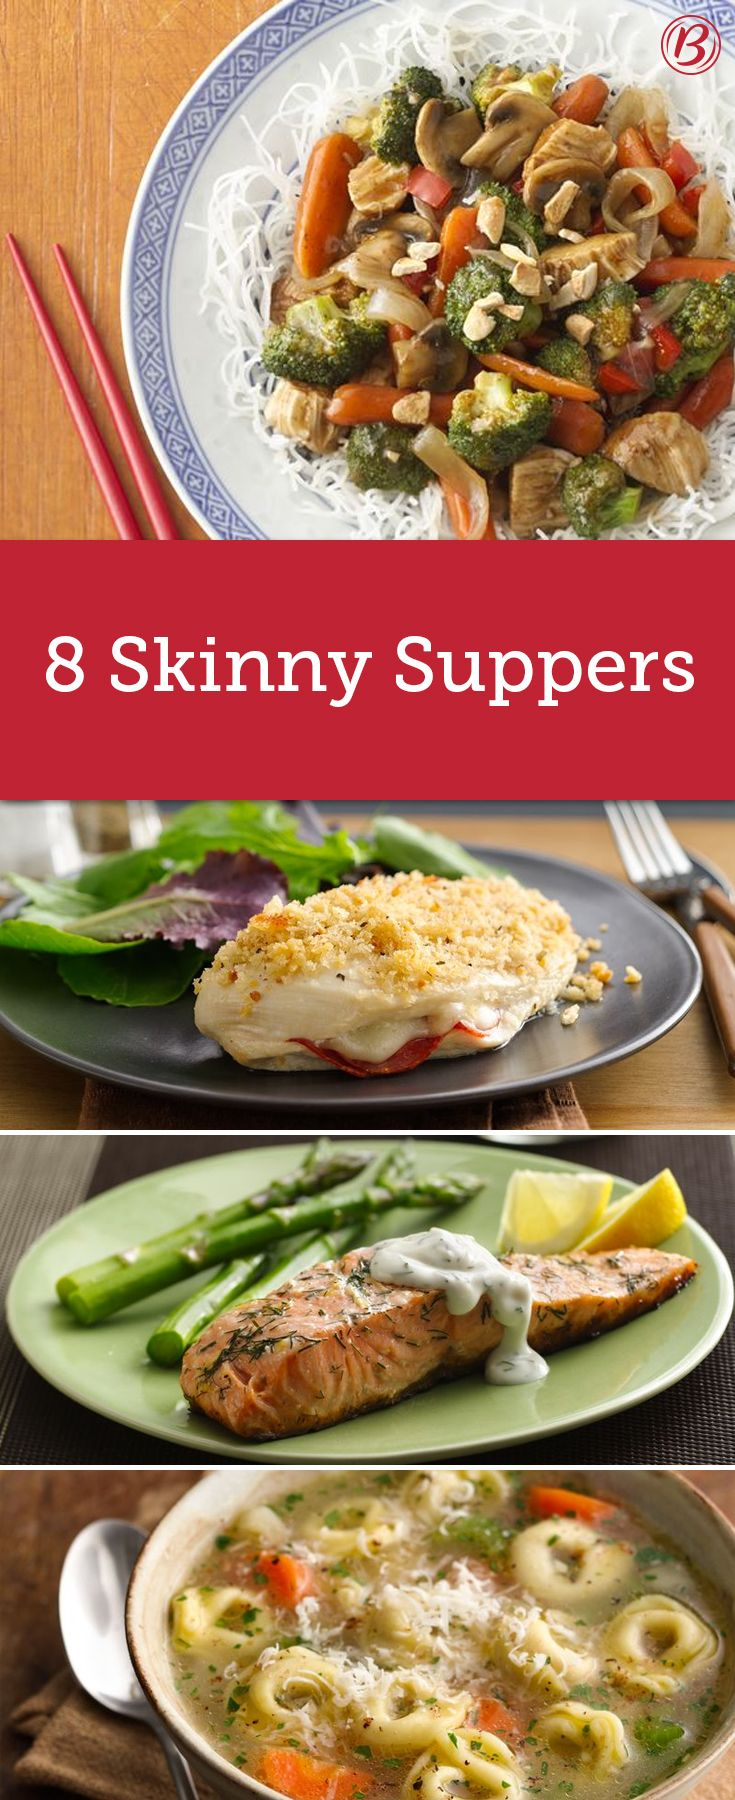 Clocking in at fewer than 300 calories per serving, these quick and easy meals fill you up without weighing you down. Stuffed chicken breasts, tortellini soup and creamy turkey casserole are just a few of our favorites!